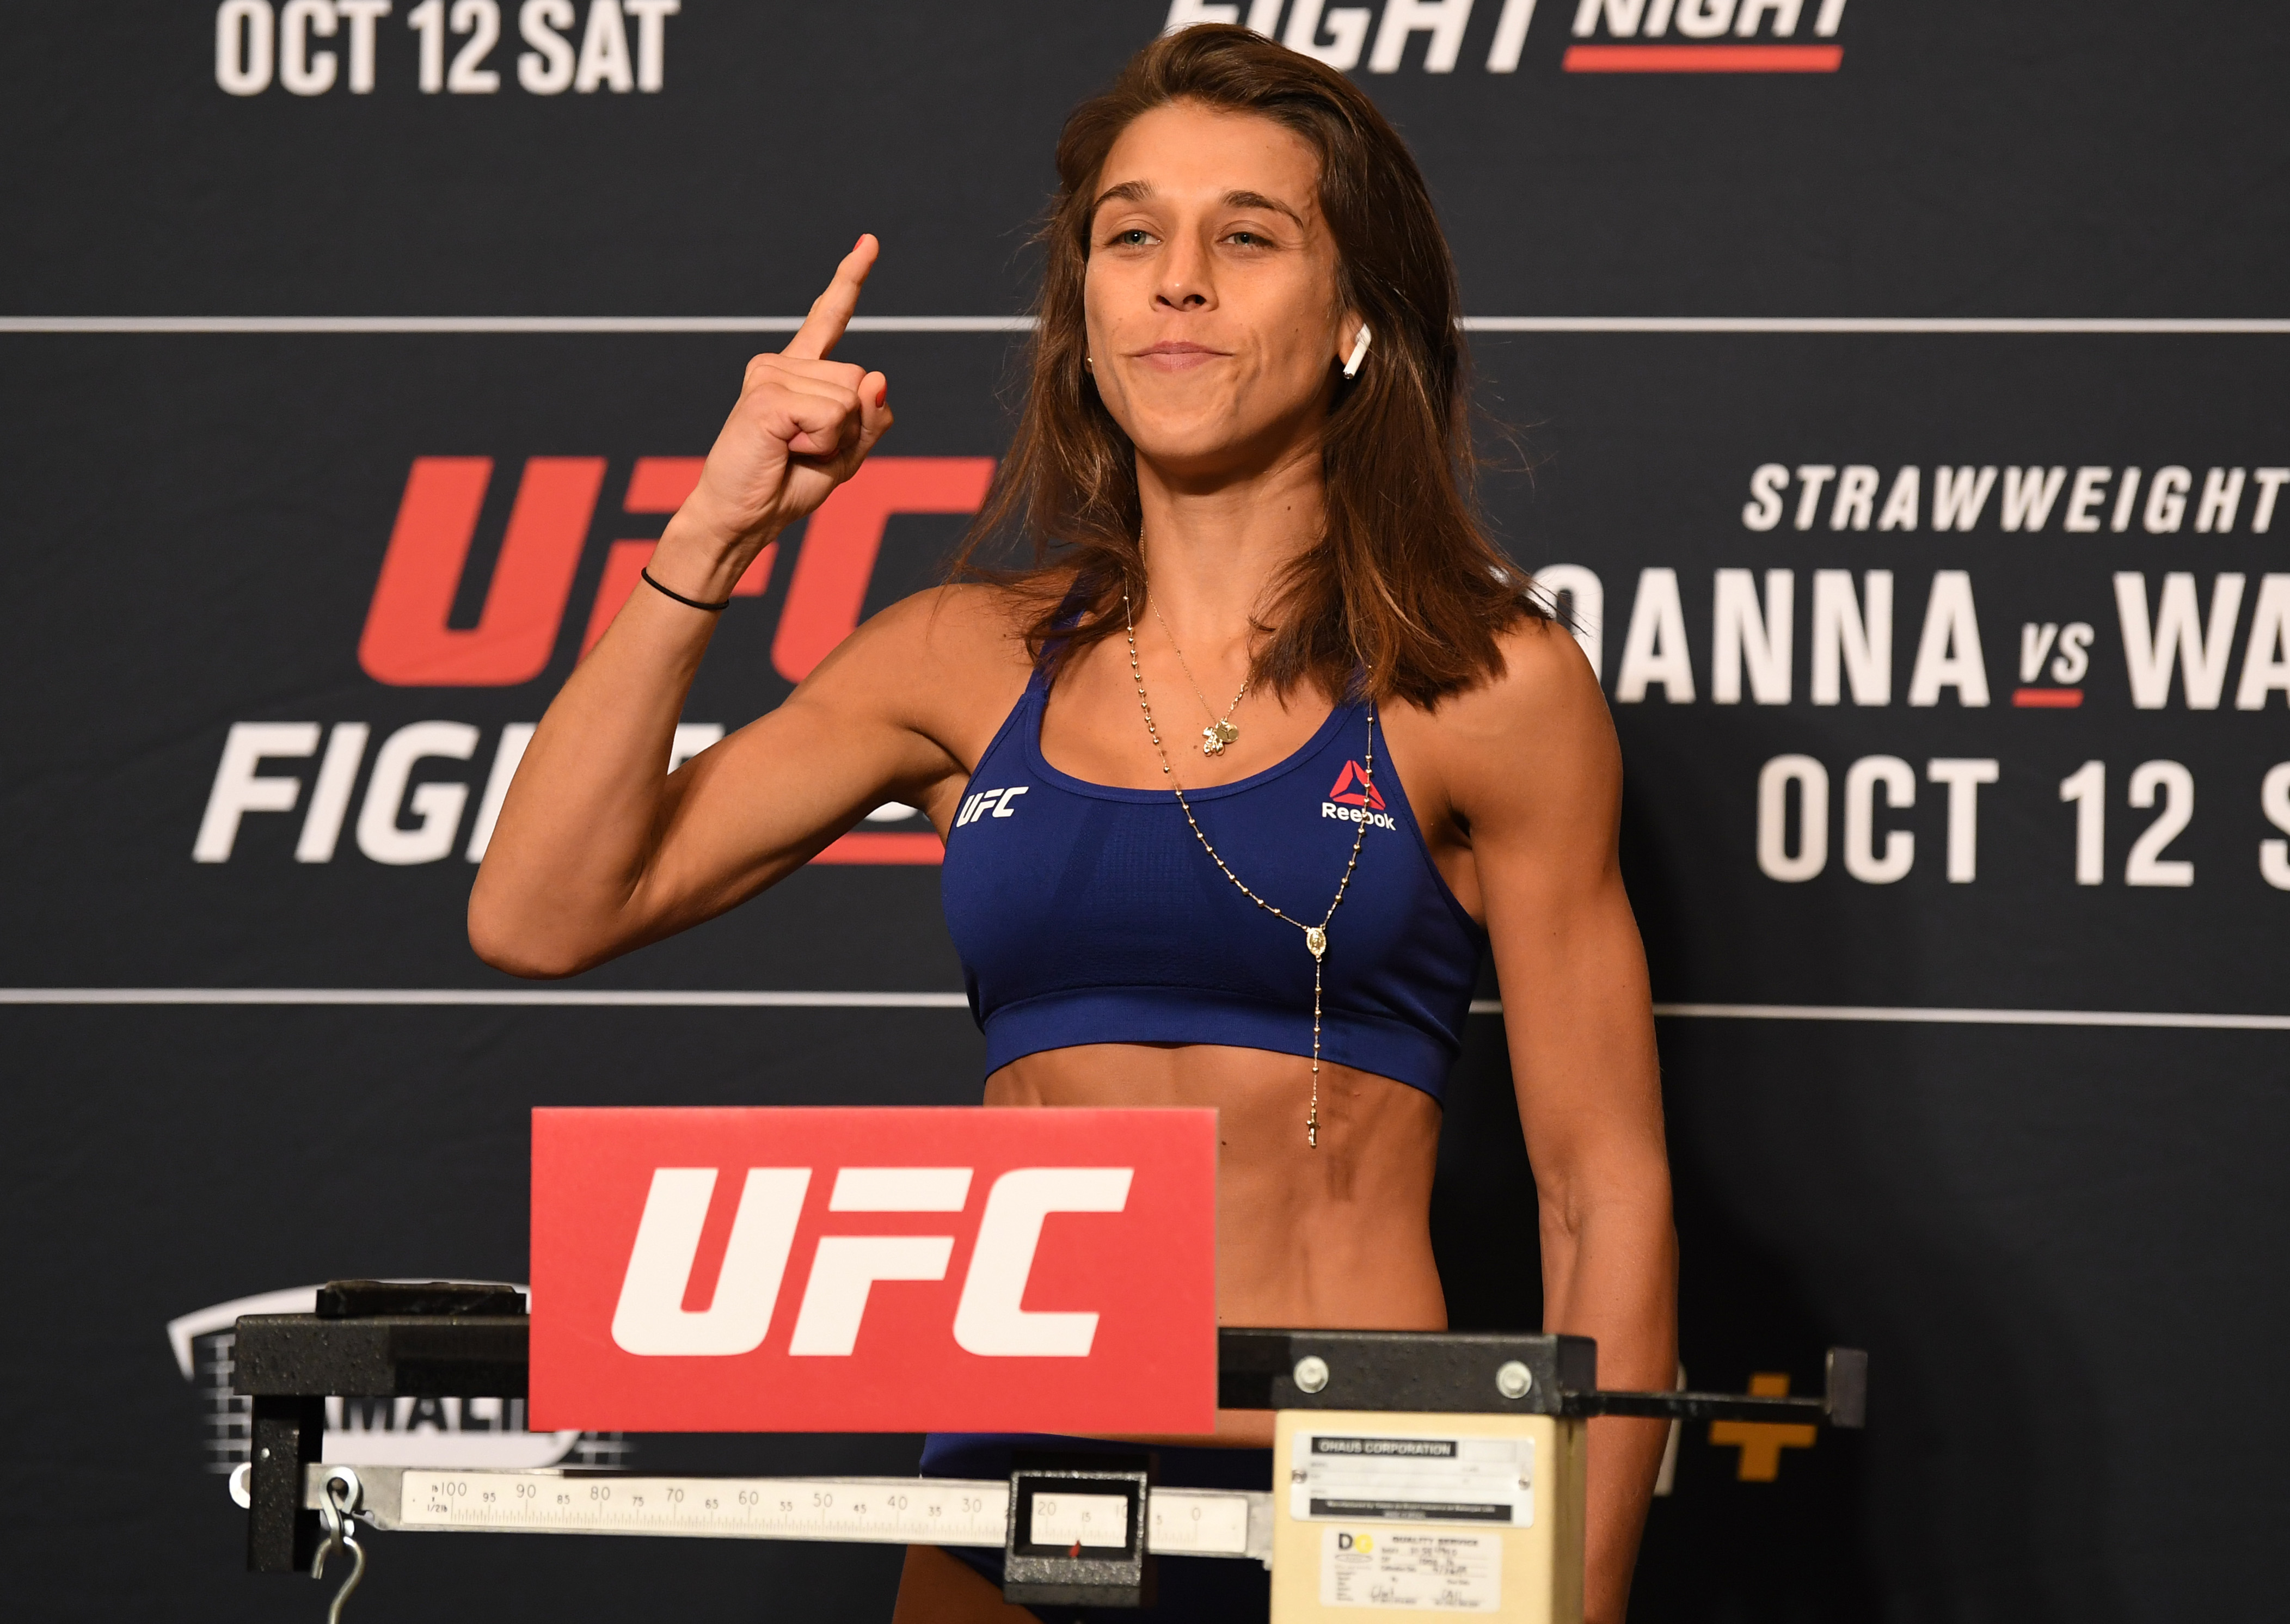 UFC Fight Night Joanna v Waterson: Weigh-Ins